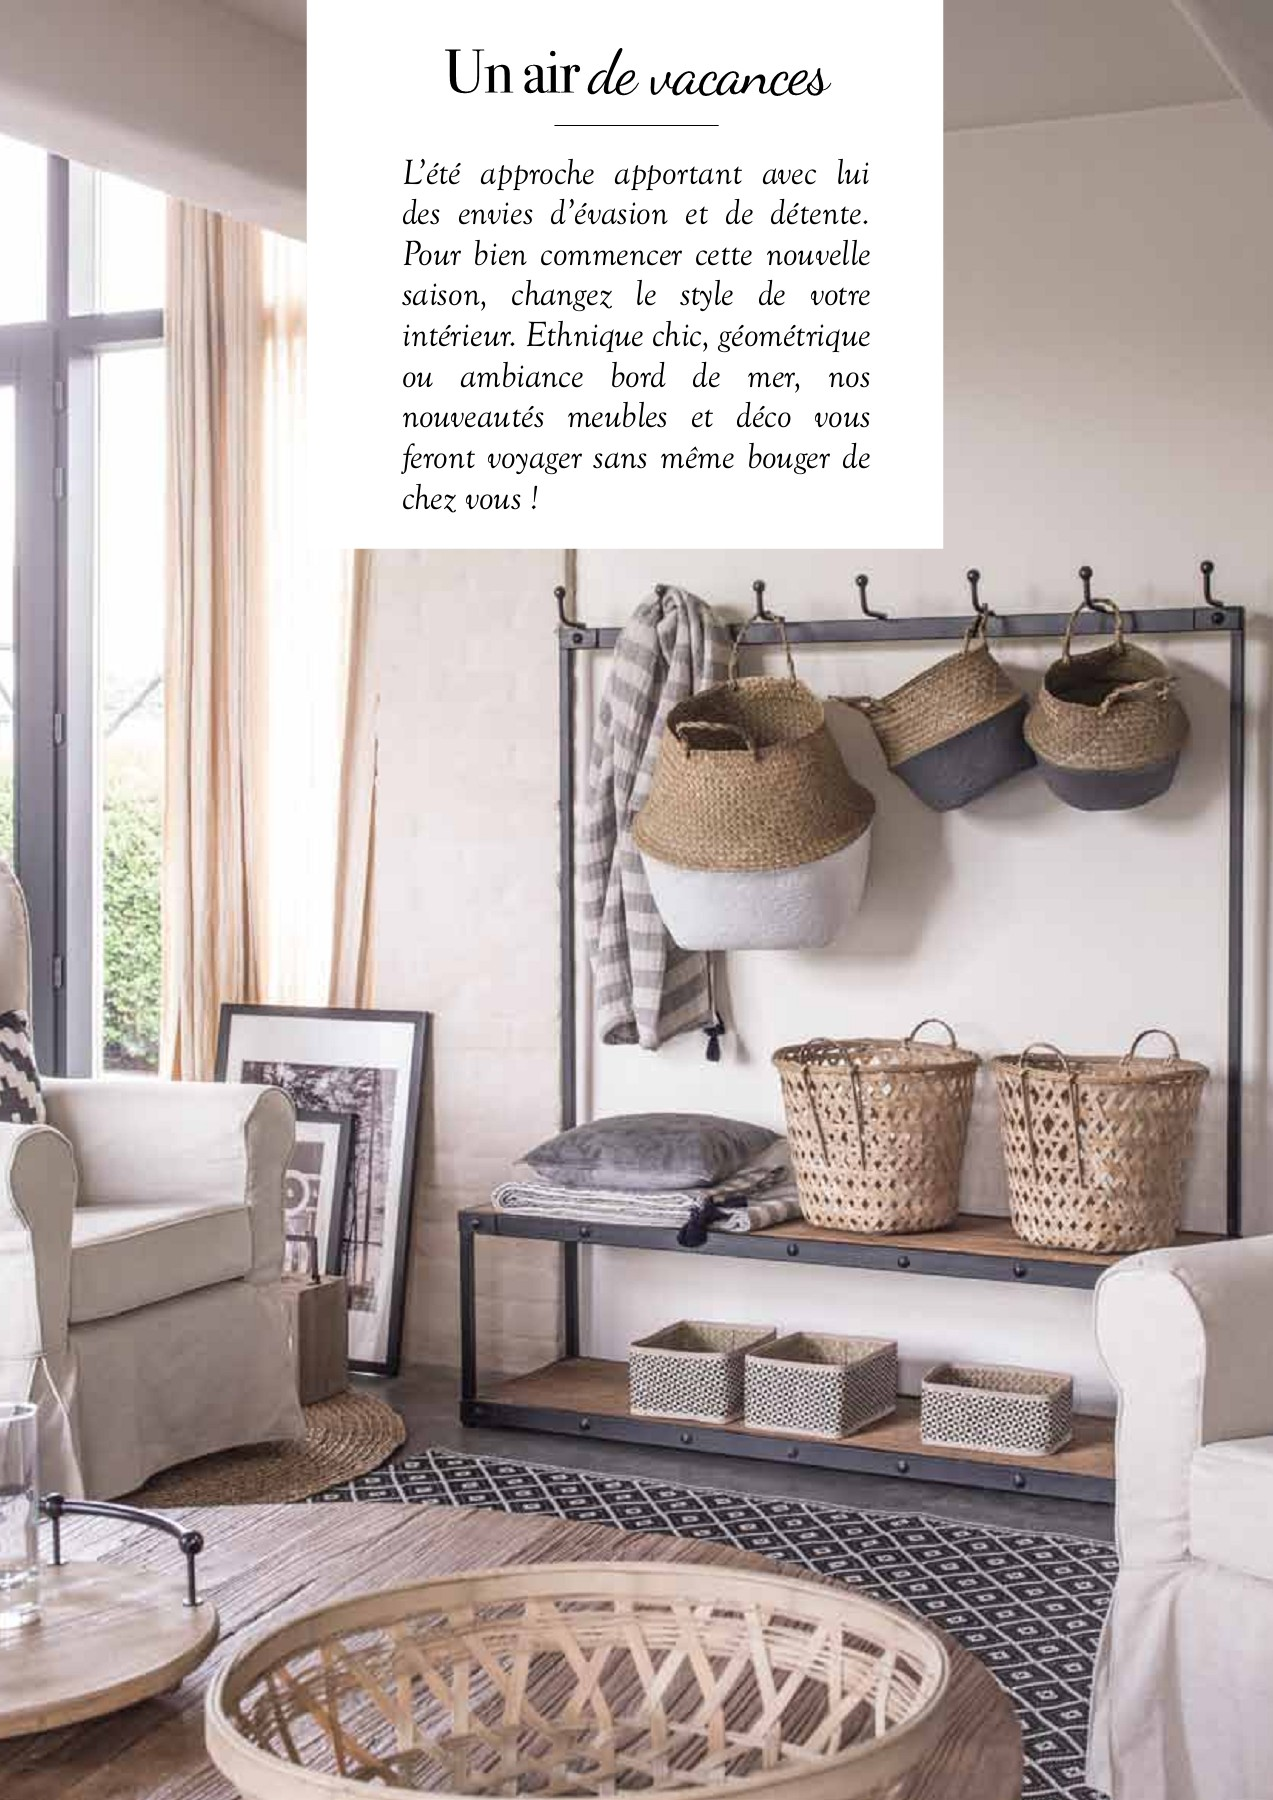 Ambiance Bord De Mer Chic country corner - inspirée pages 1 - 18 - text version | anyflip